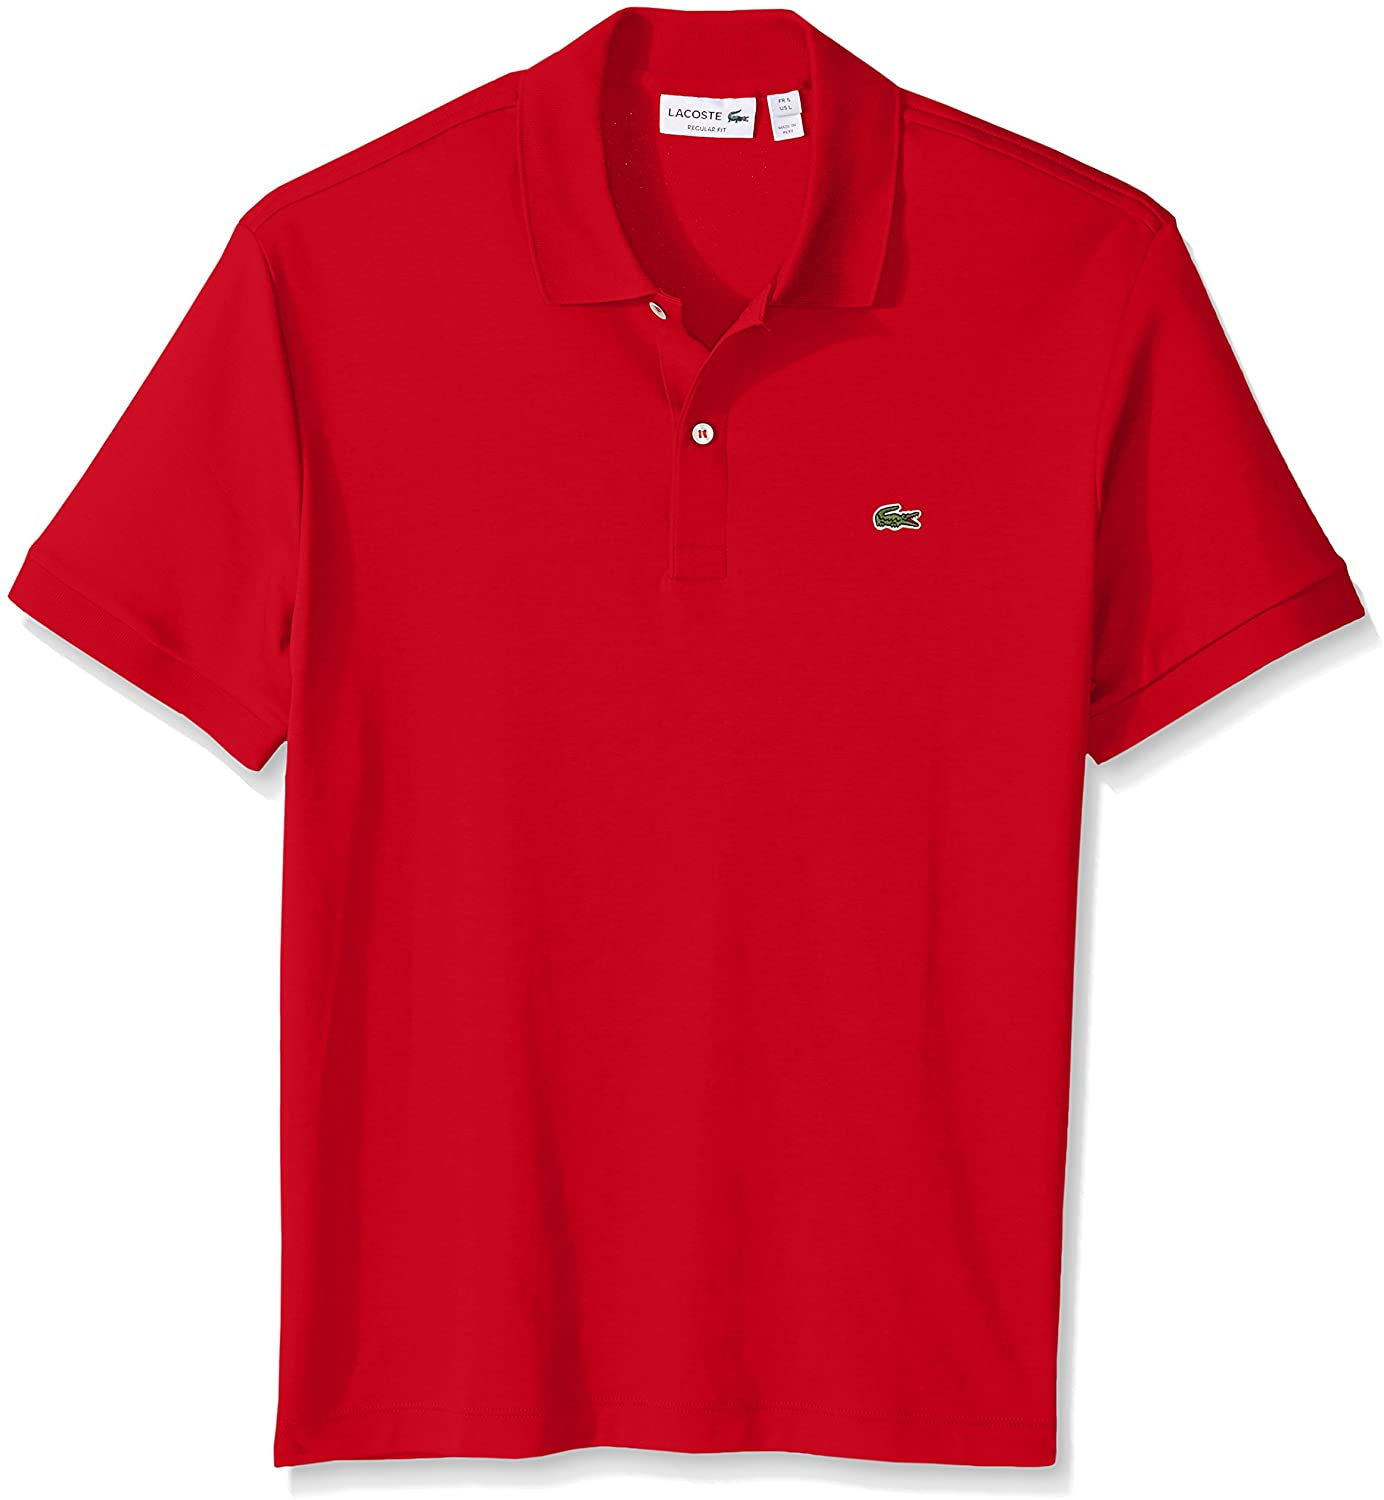 Lacoste Mens Short Sleeve Pima Jersey Interlock Regular Fit Polo Shirt